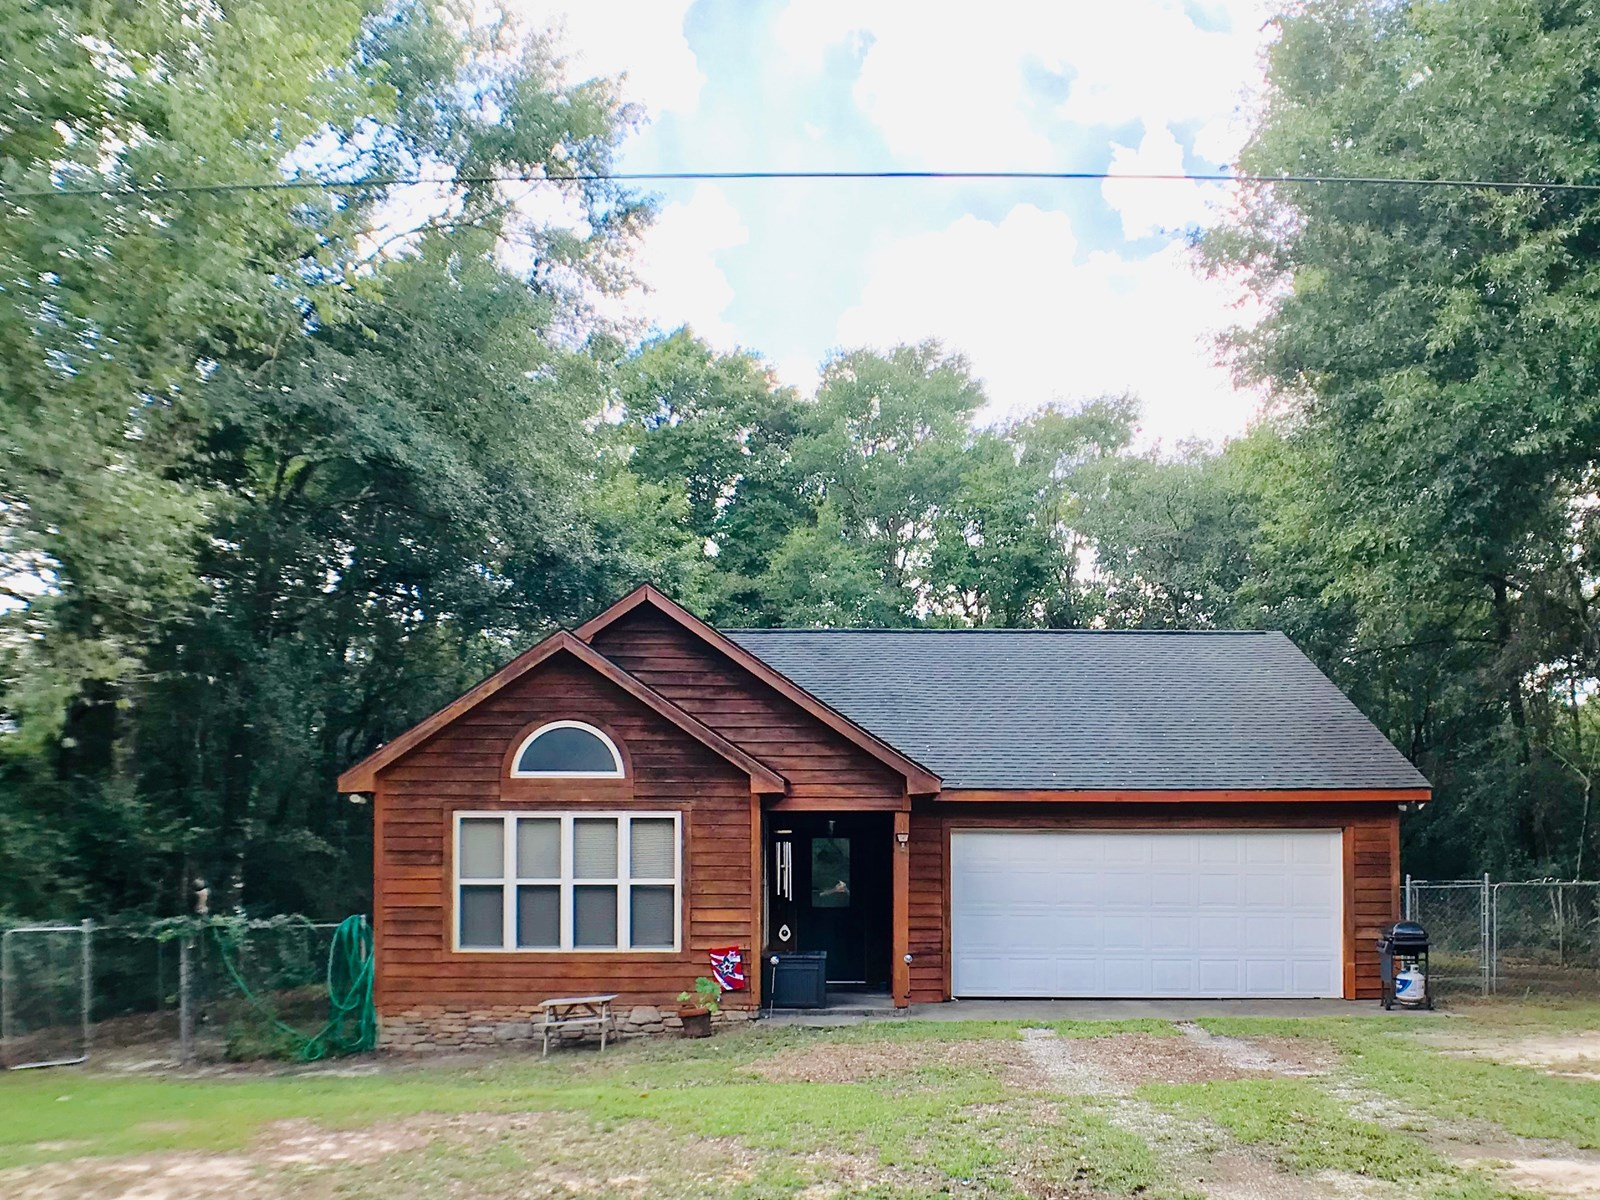 2B/2B COUNTRY HOME ON 8 ACRES FOR SALE IN GENEVA, ALABAMA